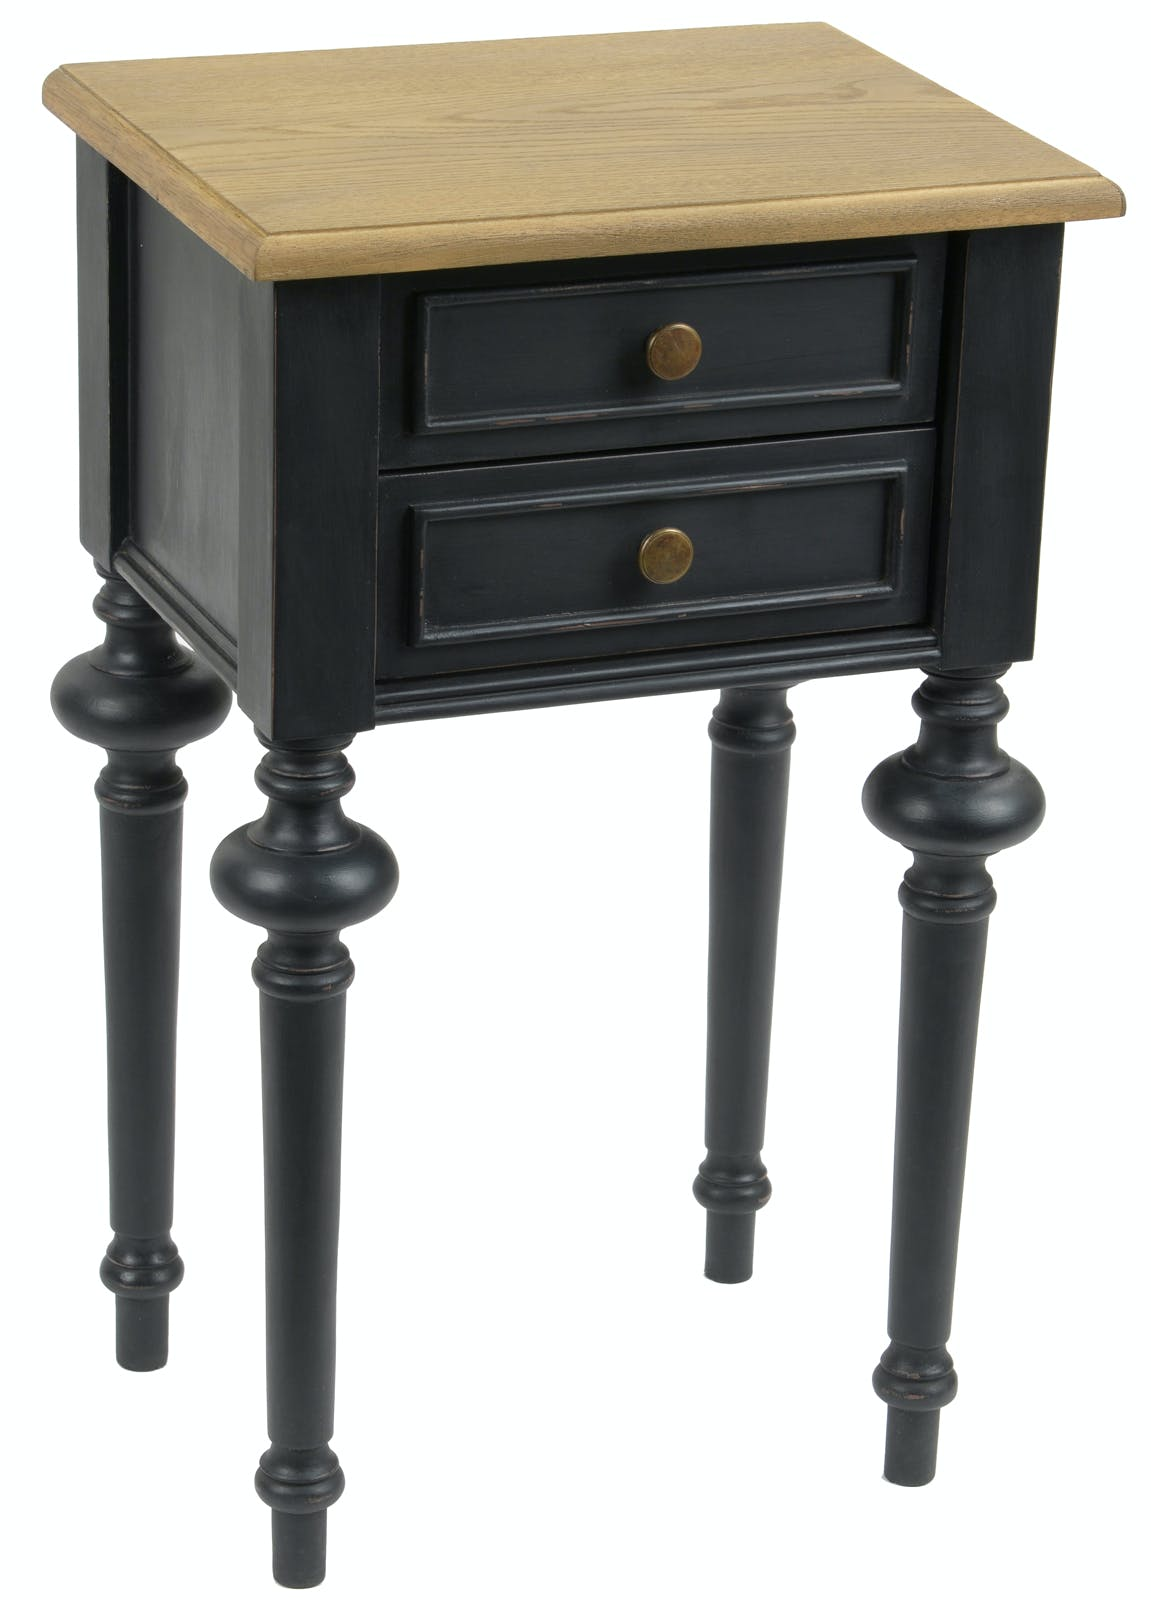 Table de chevet Louis XVI 2 tiroirs en bois bicolore noir NEW LEGENDE L40xP30xH65 AMADEUS